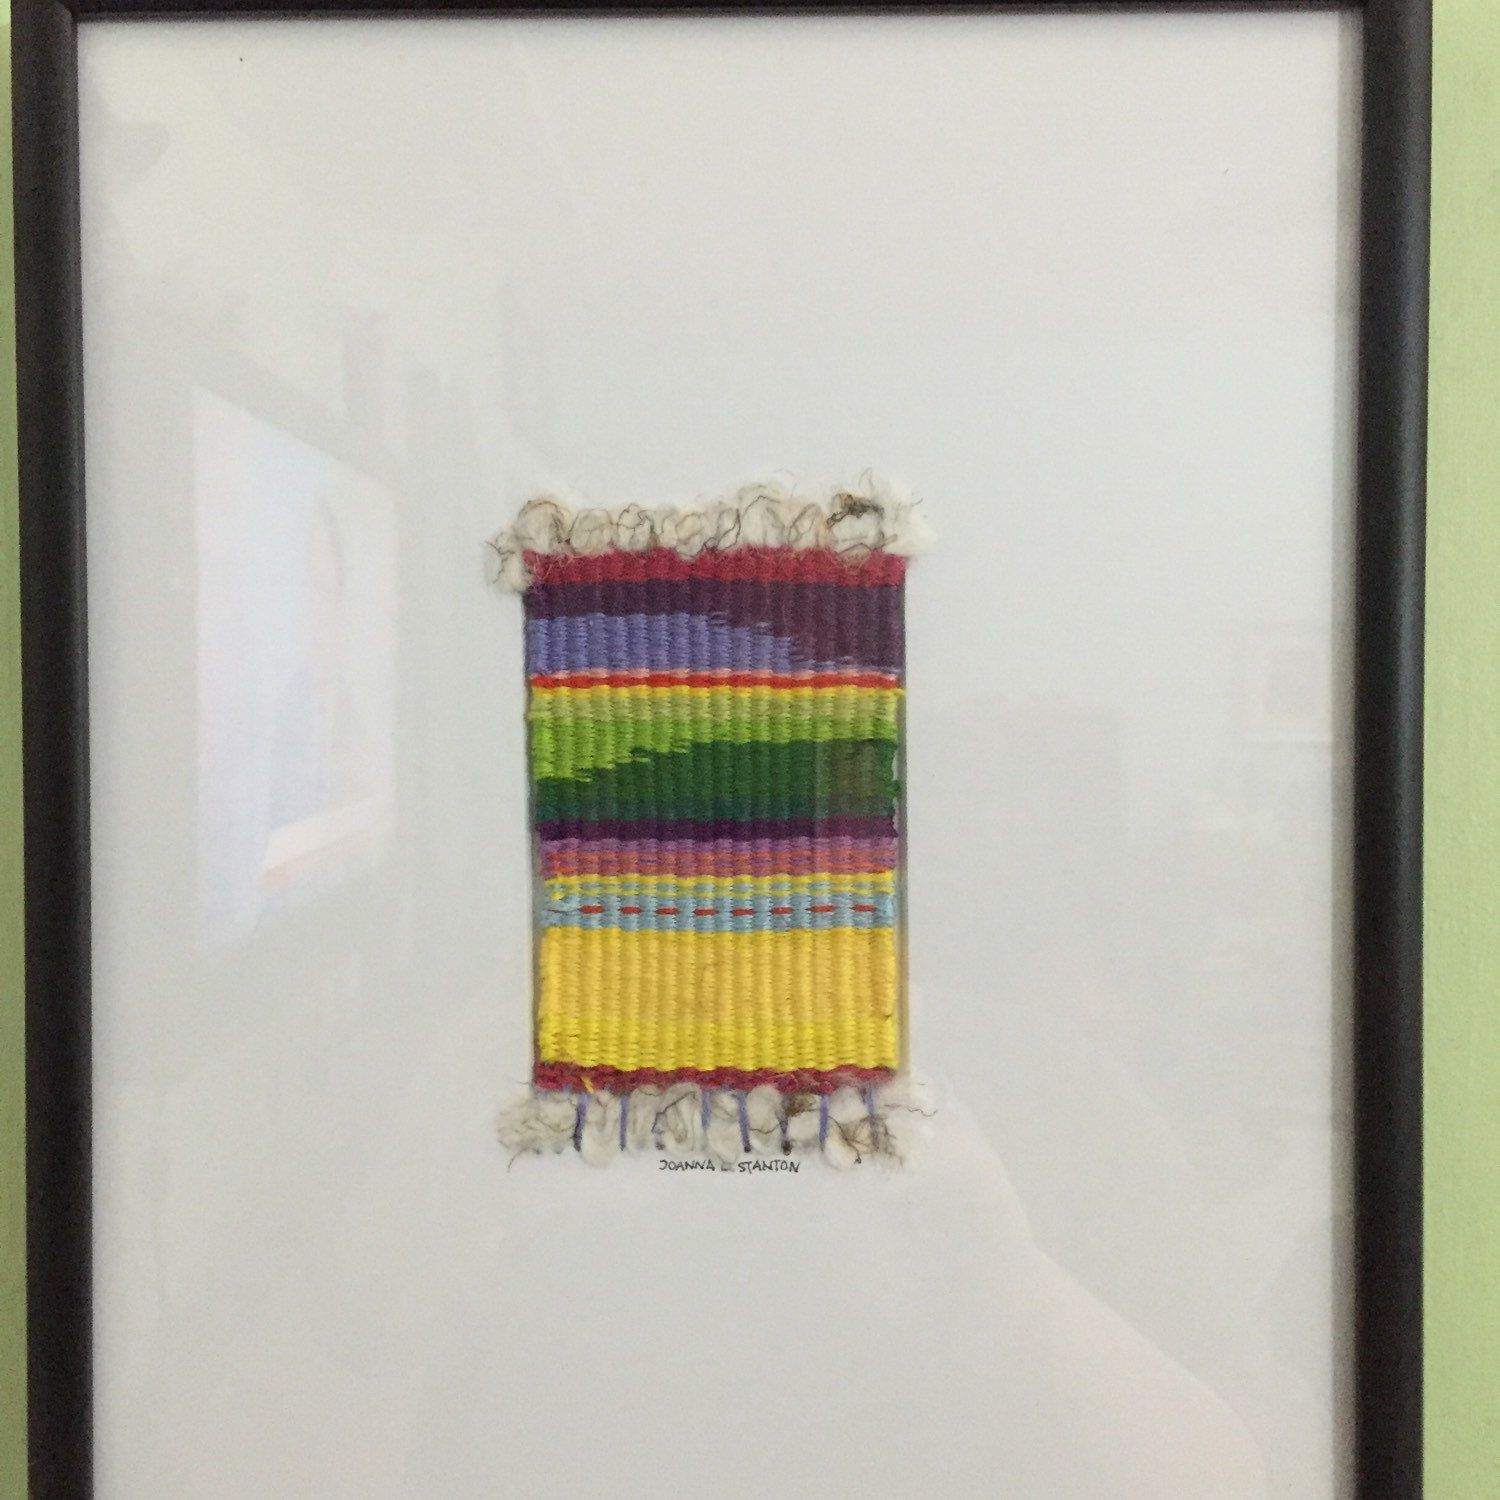 New woven framed art!